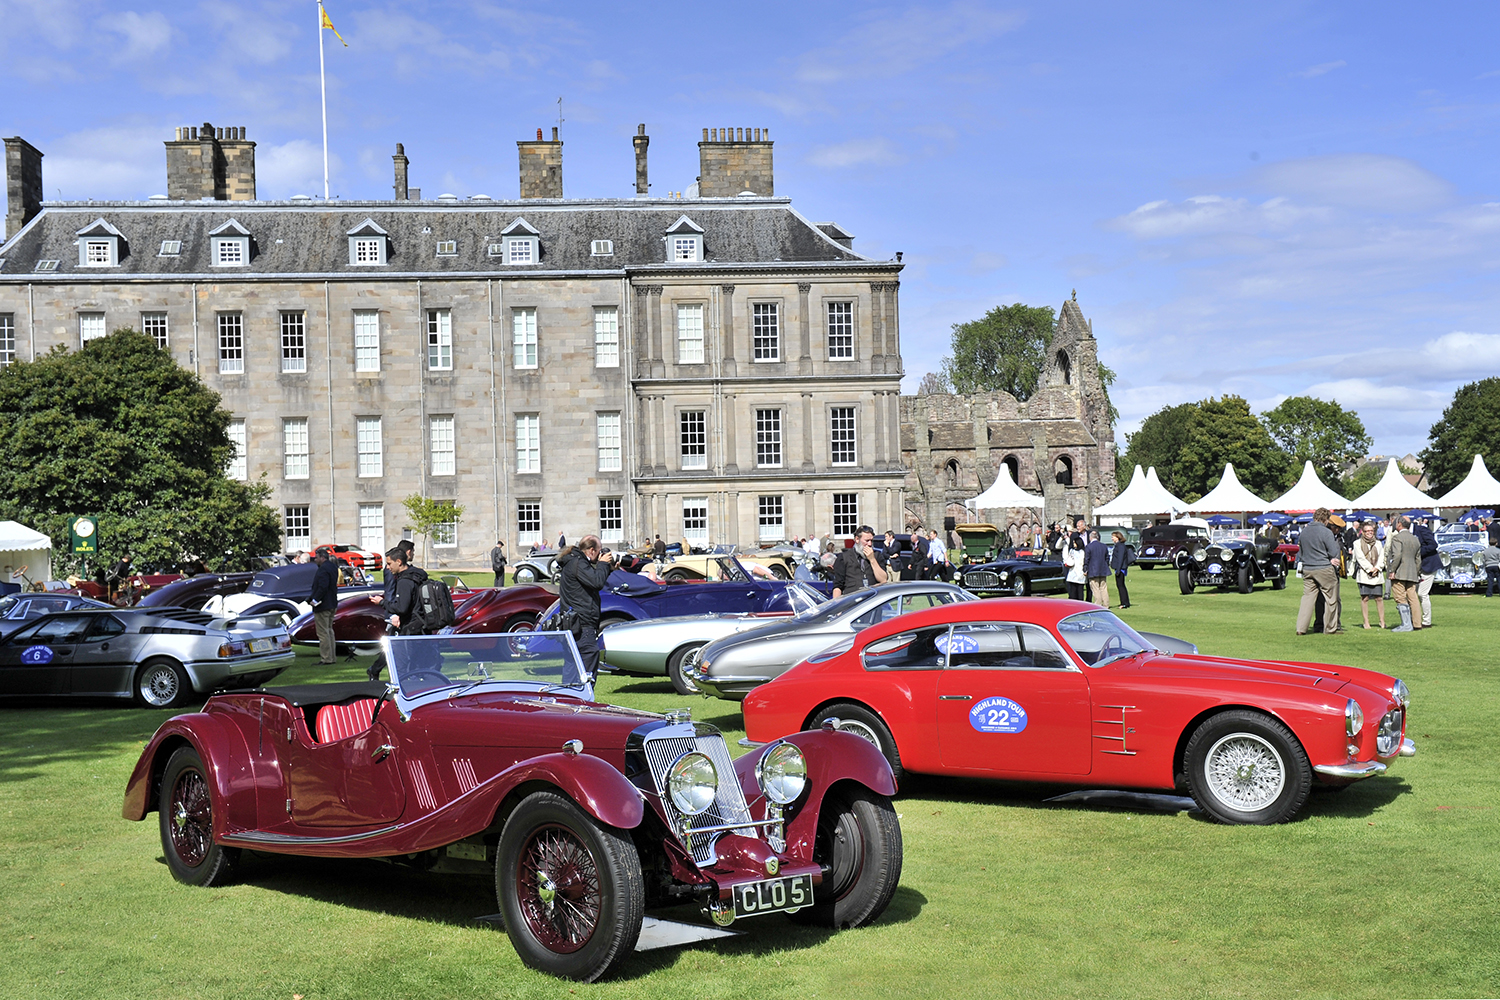 Concours of elegance wraps up a record-breaking festival of motoring royalty with 'best of show' awarded to stunning 1903 mercedes